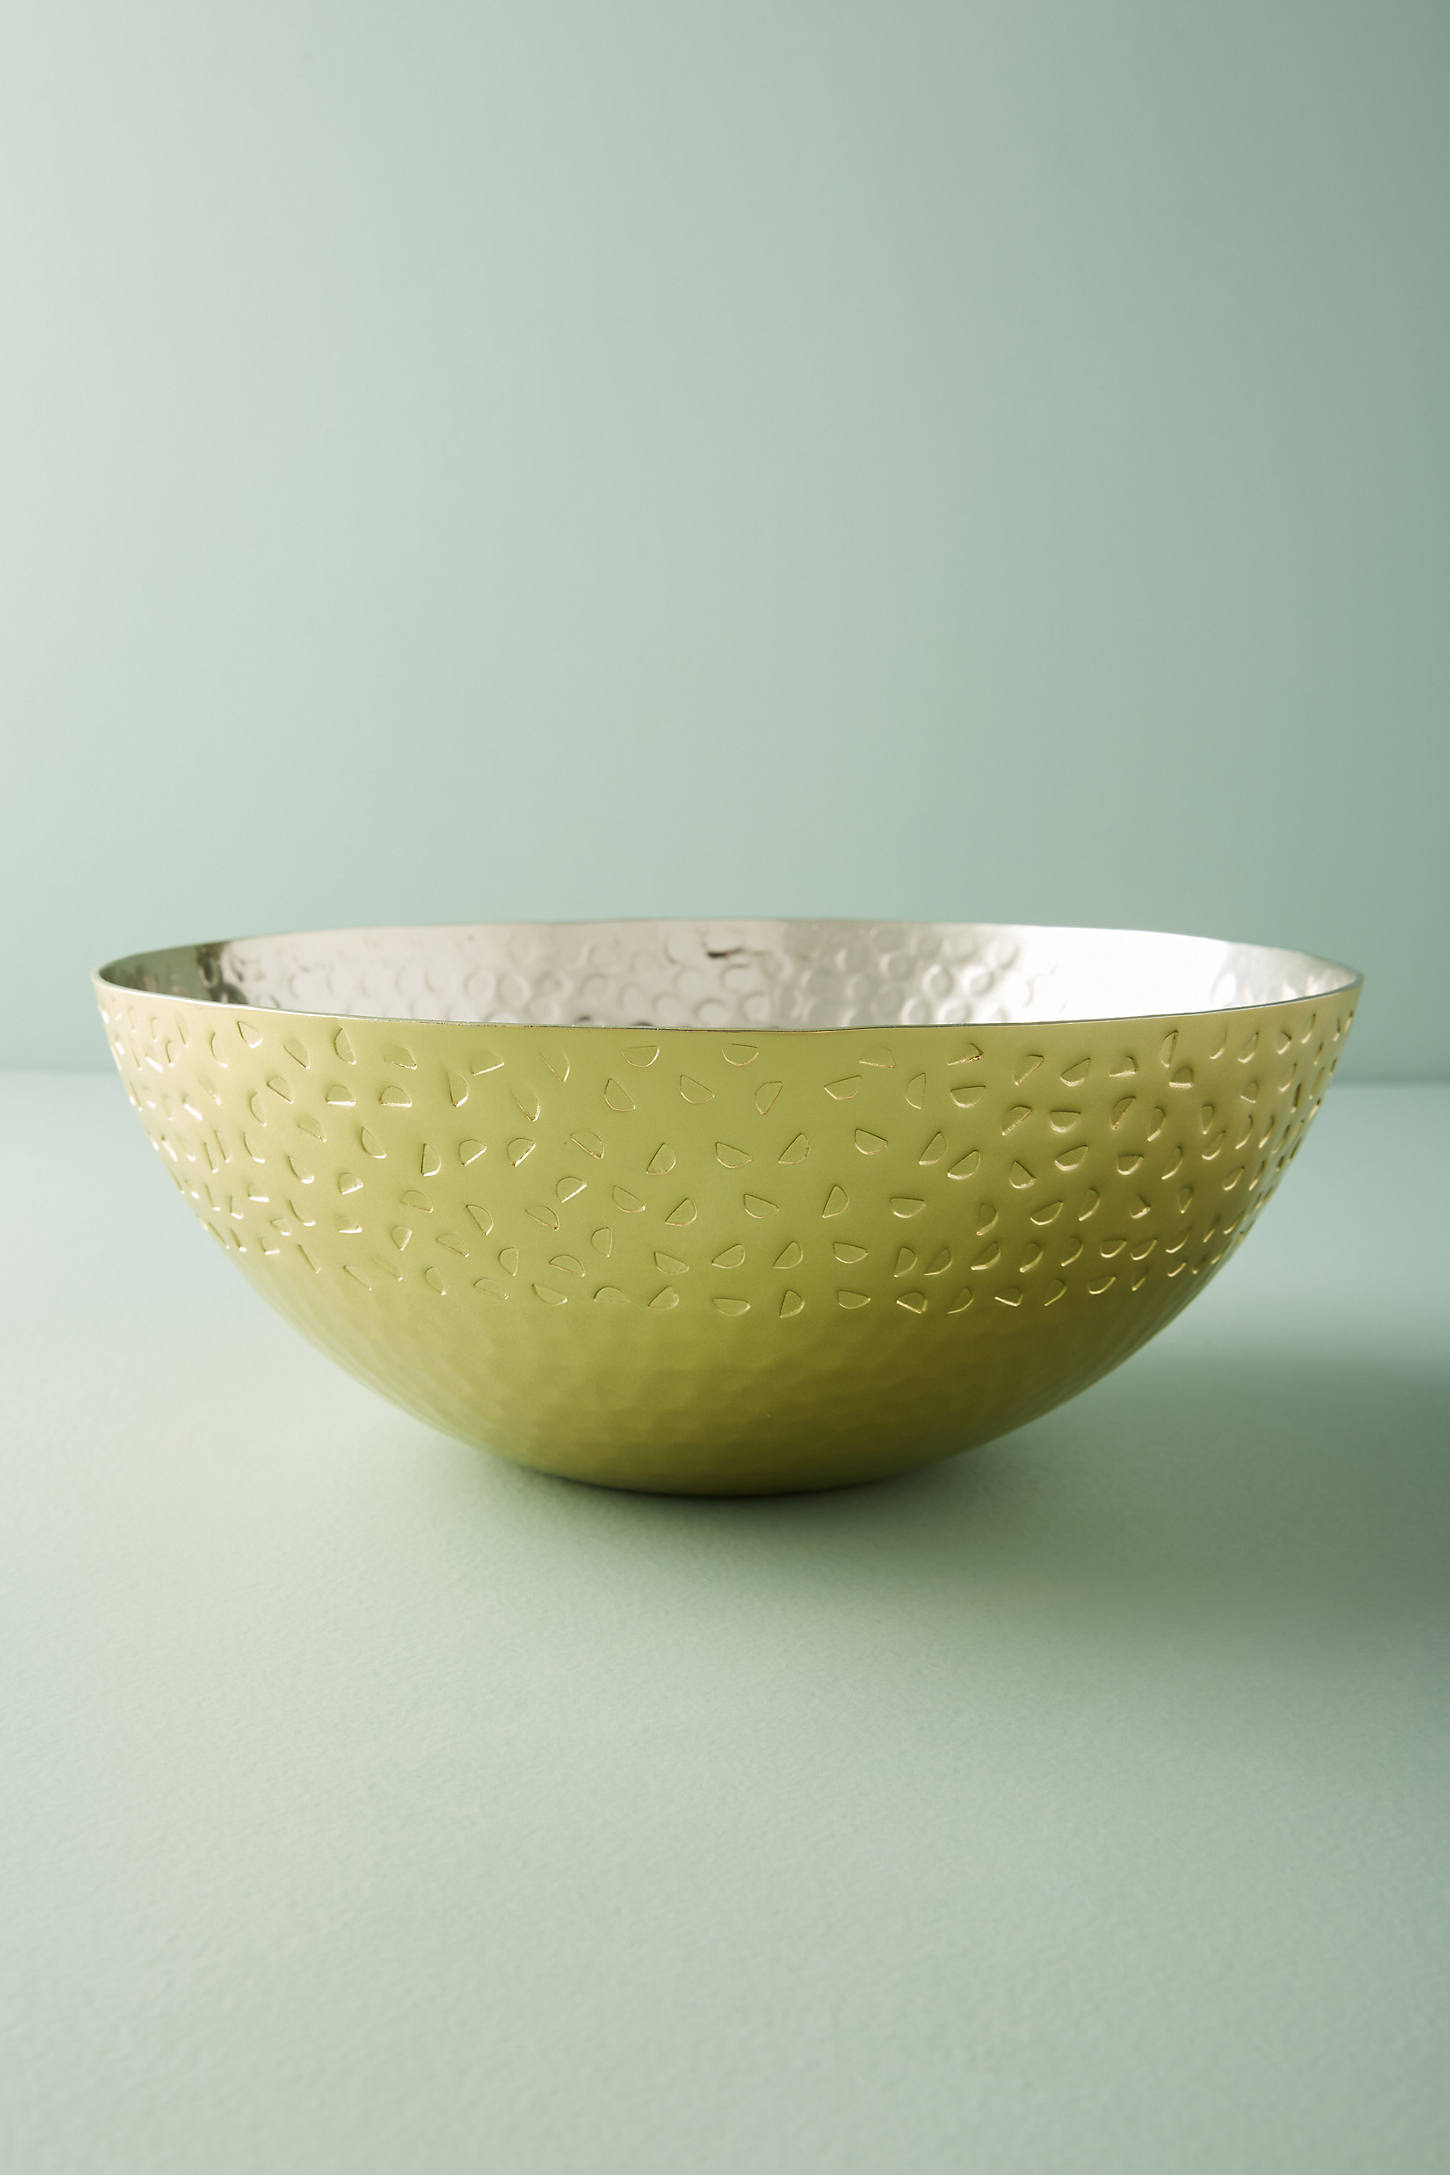 Hammered Zanzi Nesting Bowl